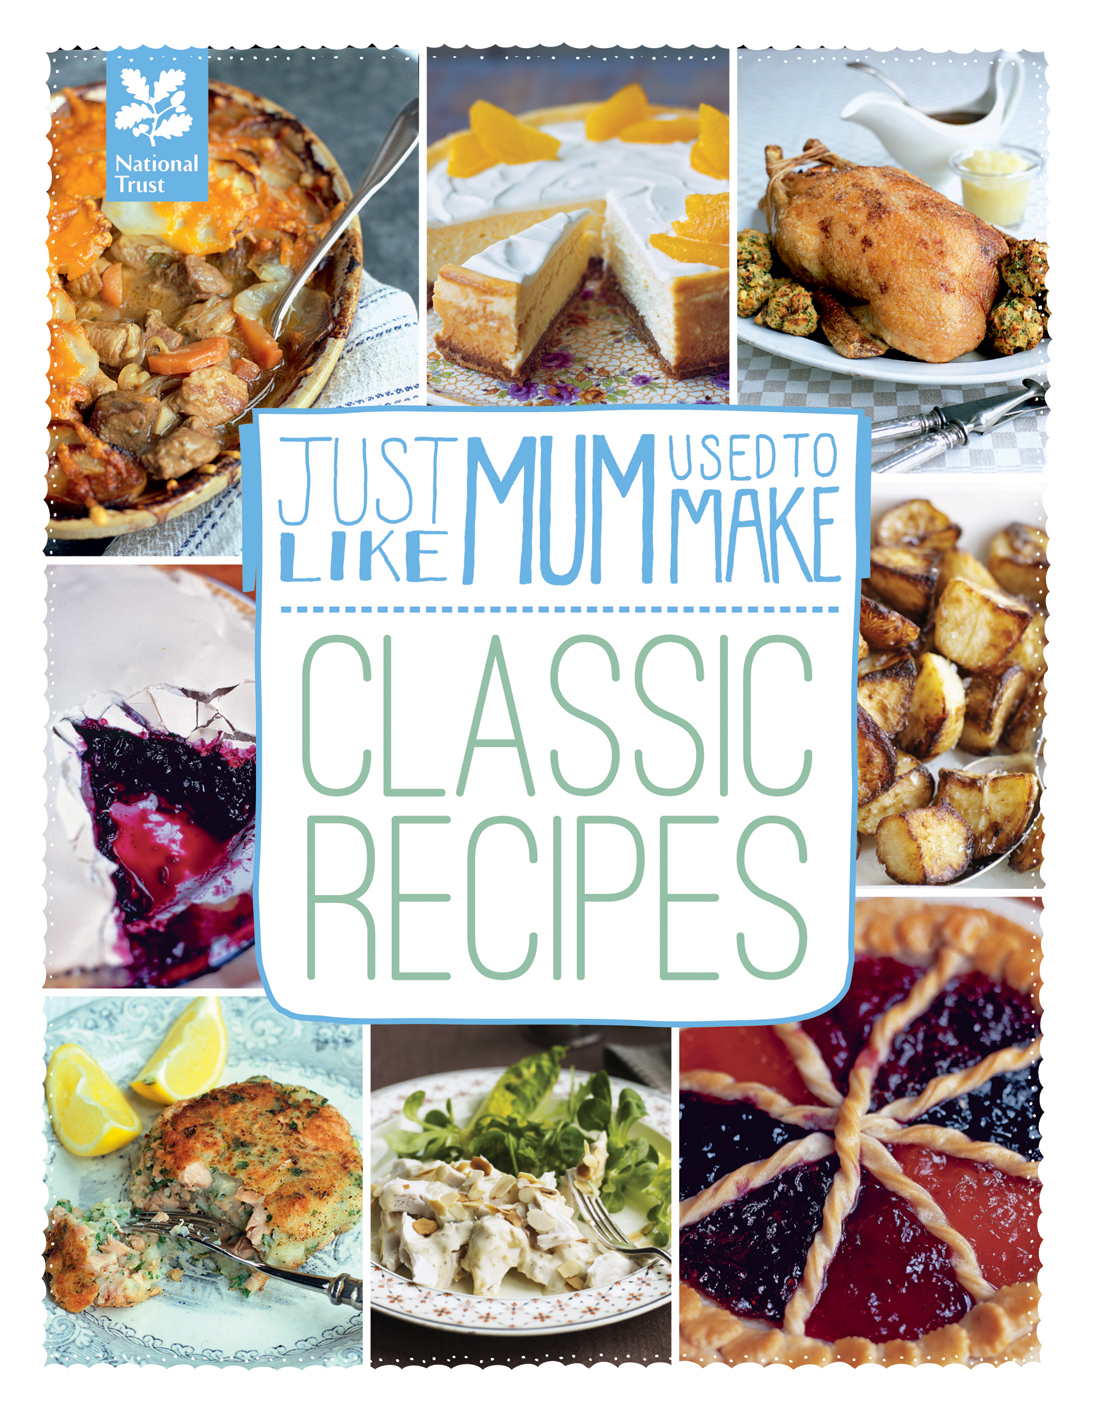 Just Like Mum Used to Make: Classic Recipes